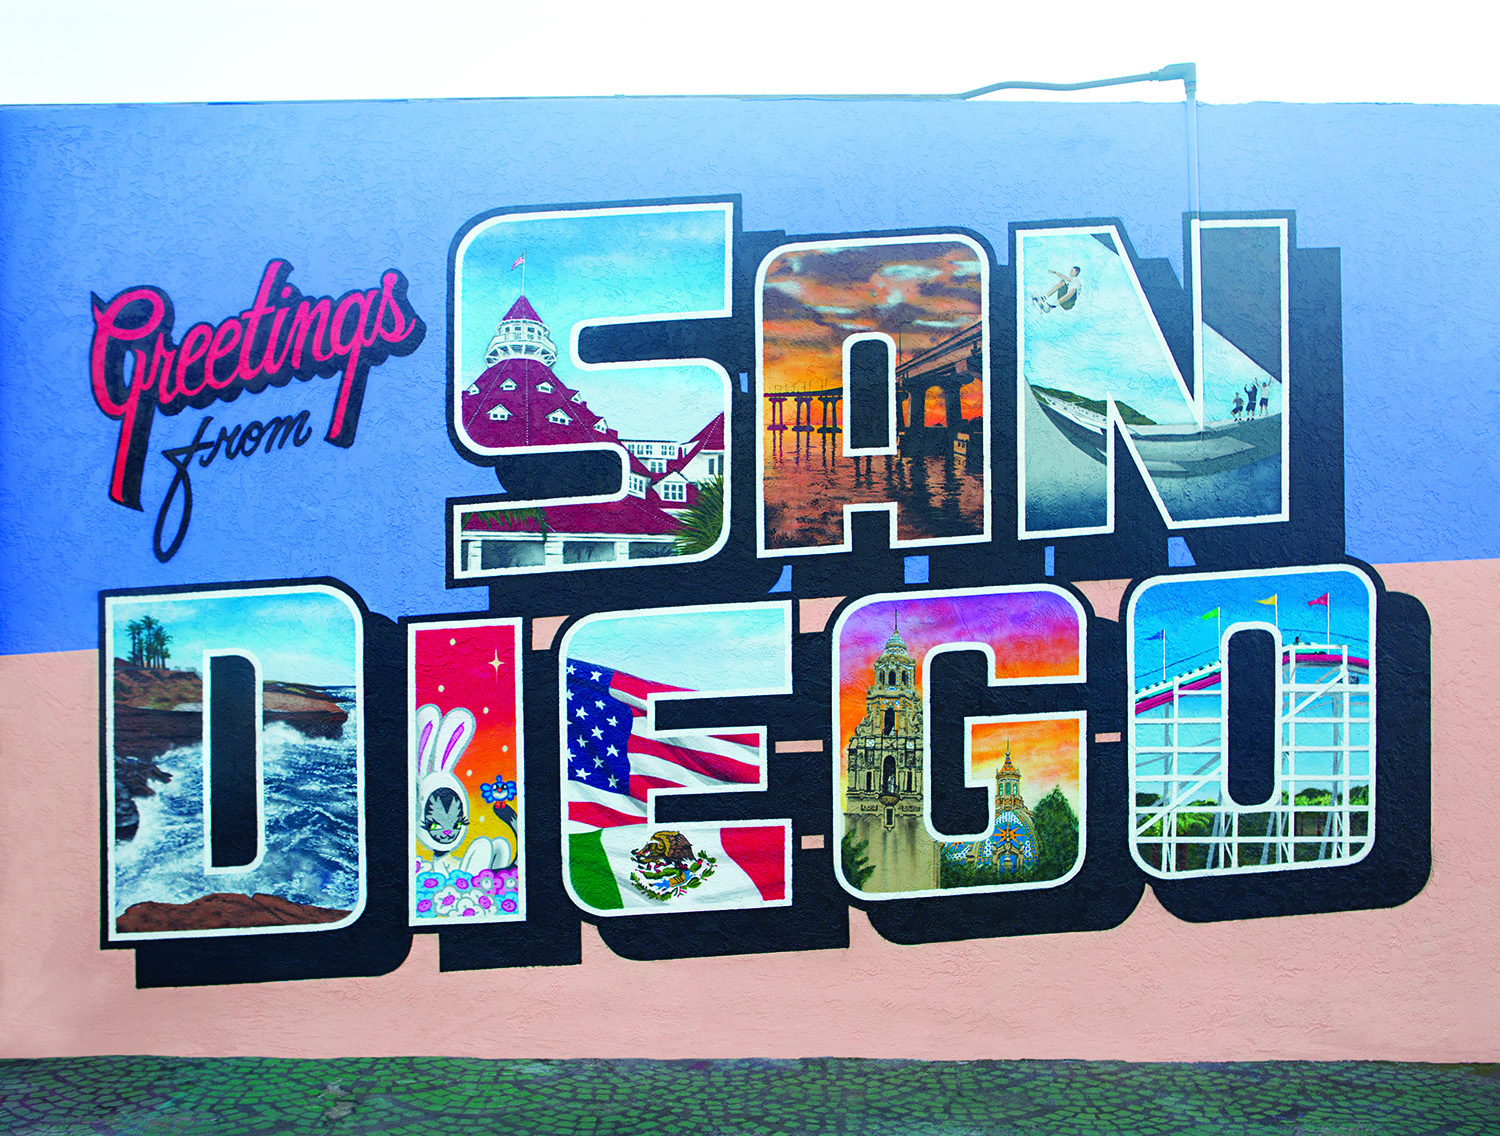 Greetings Tour Us Postcard Mural Artists Traveling In Rv